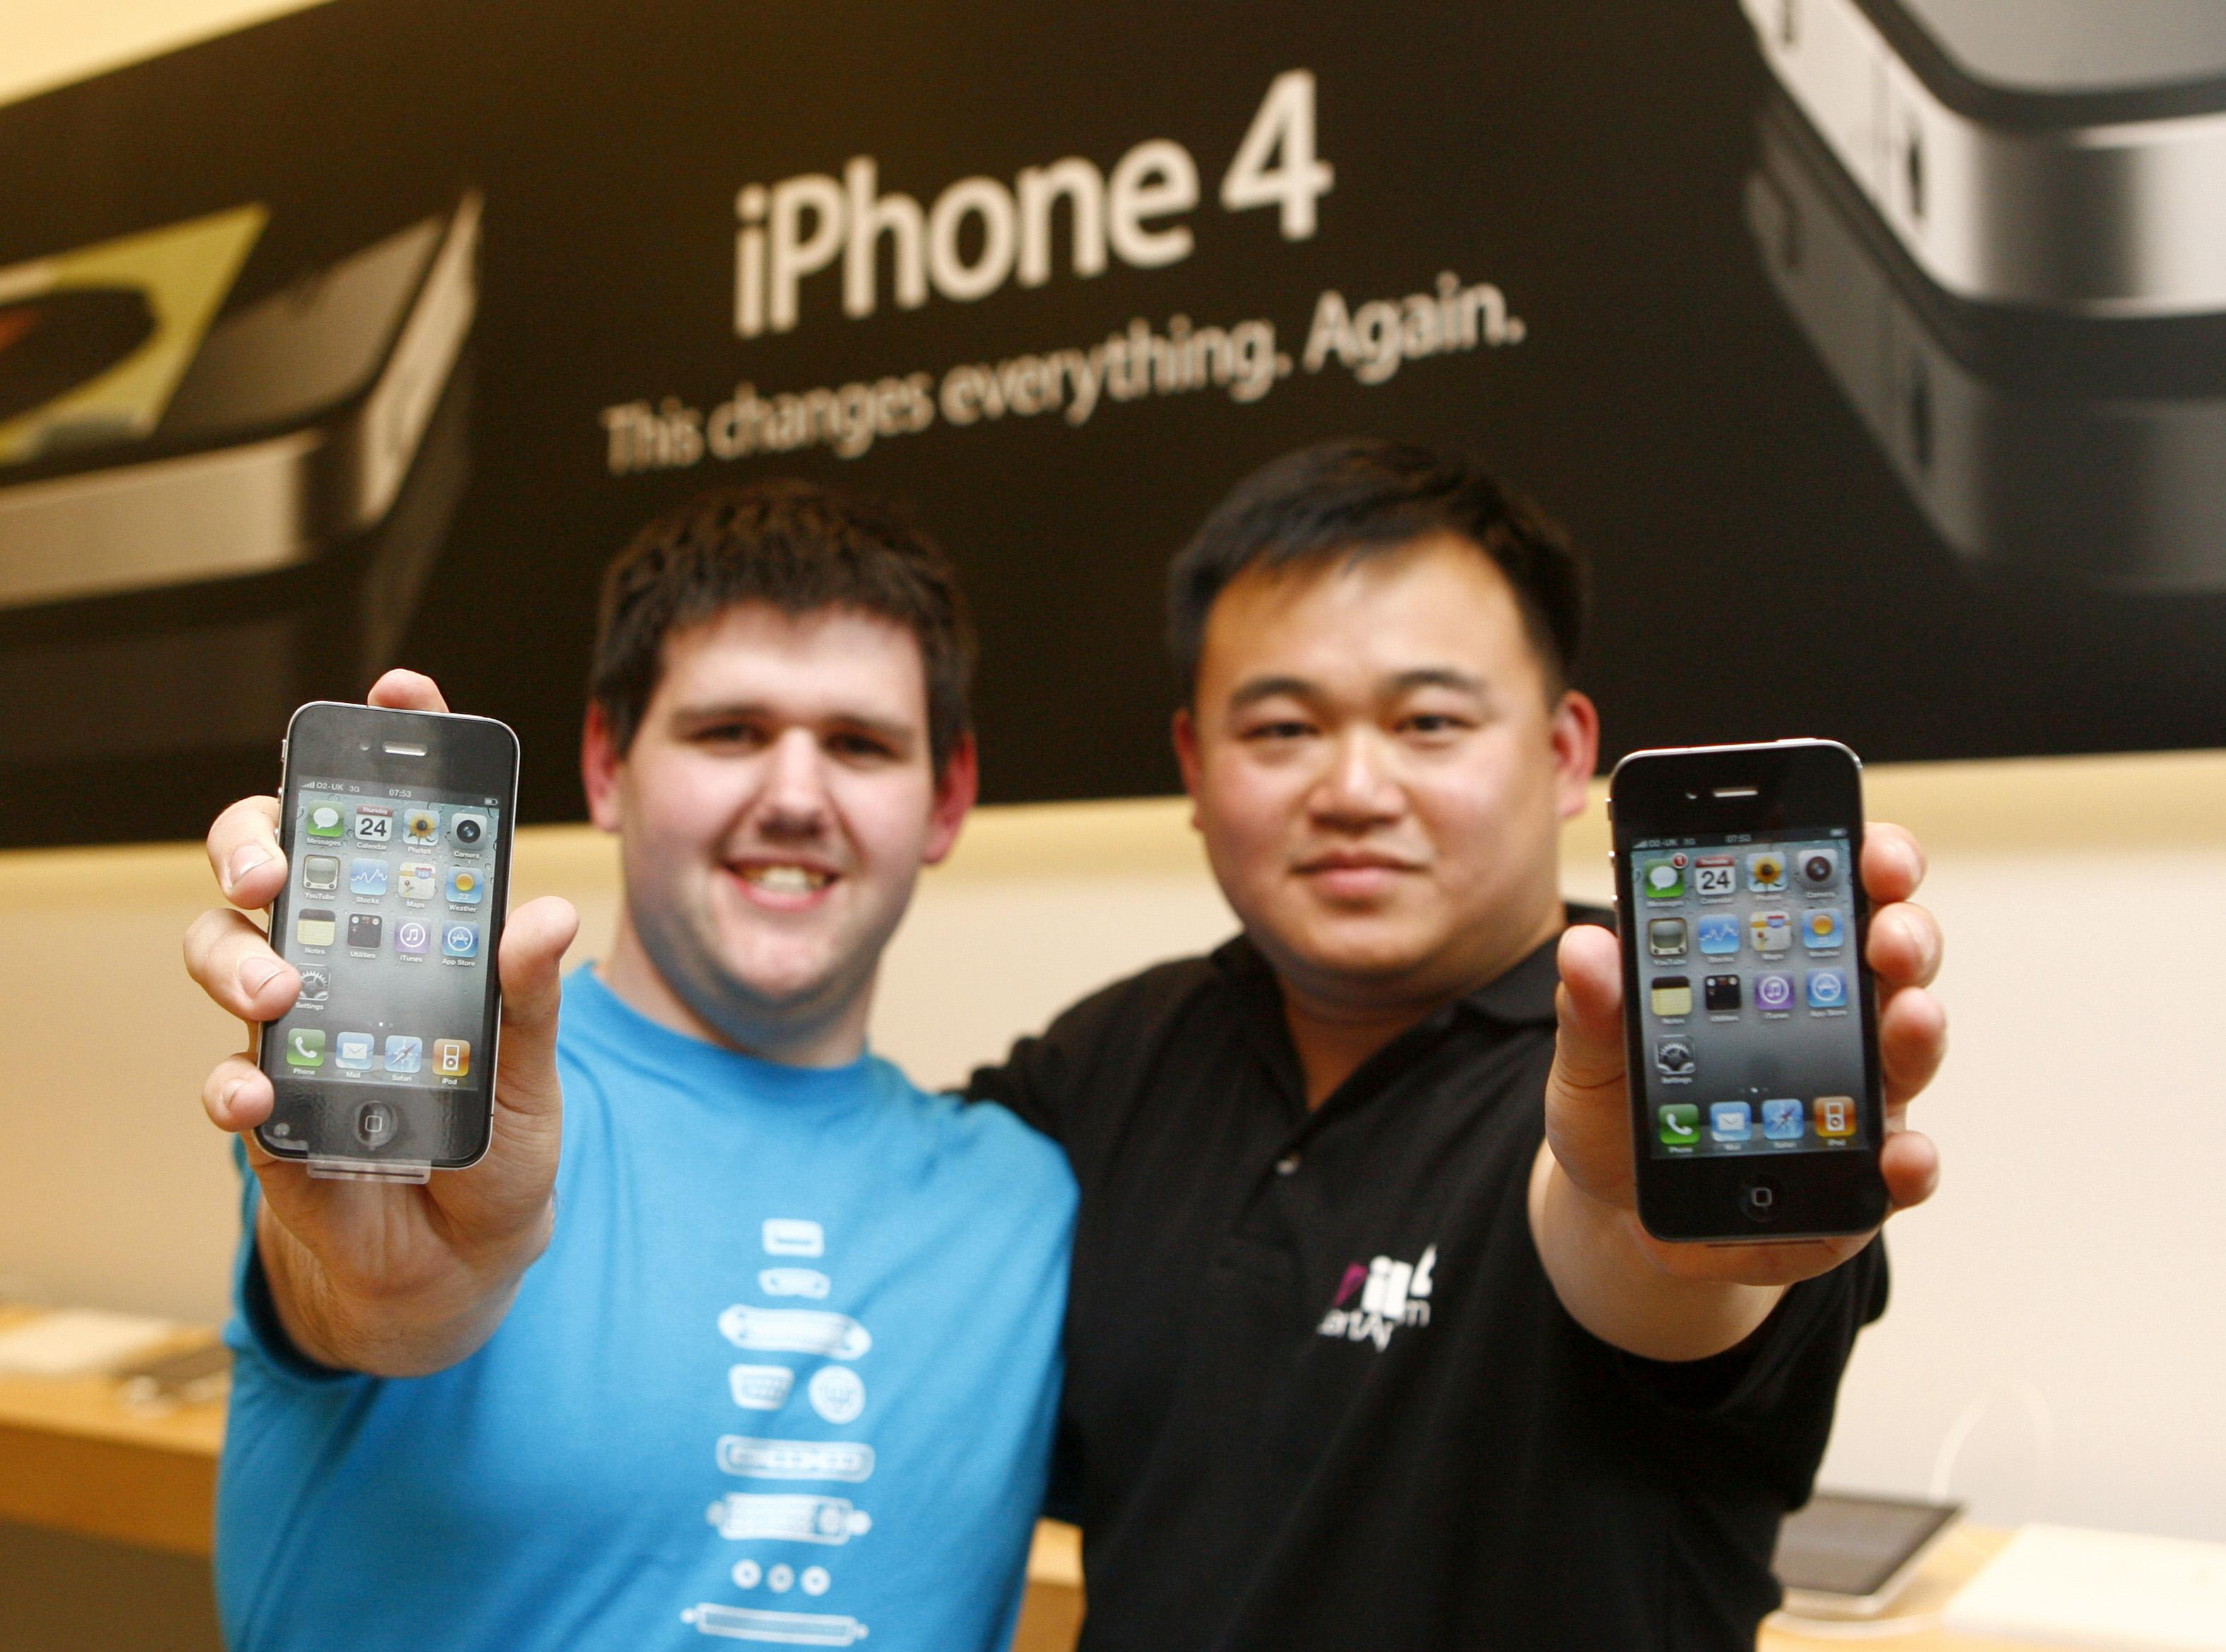 iPhone 4 being sold